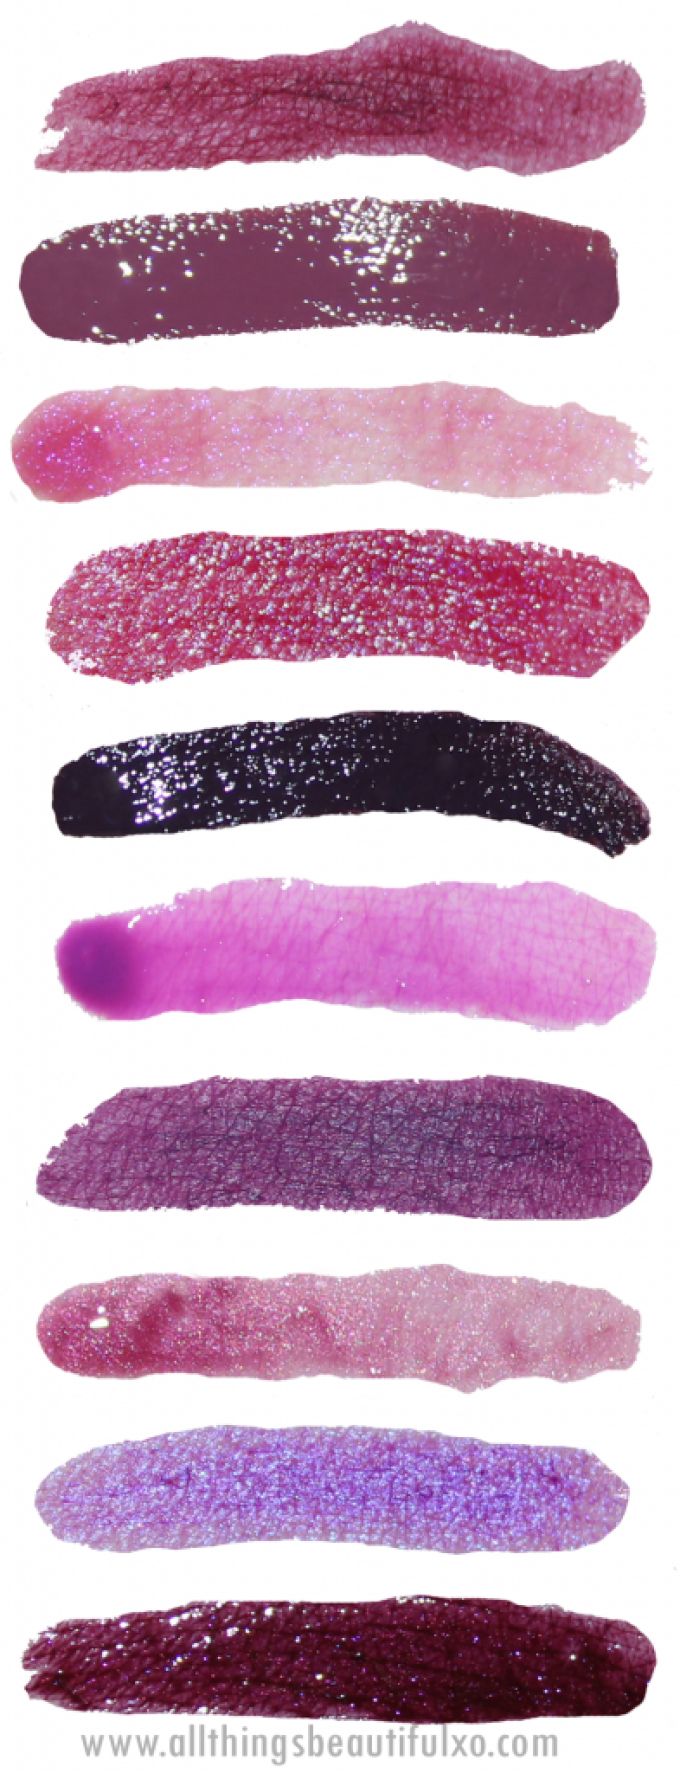 Swatches & review of 10 Gorgeous Purple Lippies - Matte, Gloss, Lipsticks, & more including Makeup Revolution, Too Faced, Buxum, NYX, Milani, Bare Minerals, Kat Von D, Urban Decay, & L'Oreal! on All Things Beautiful XO | www.allthingsbeautifulxo.com